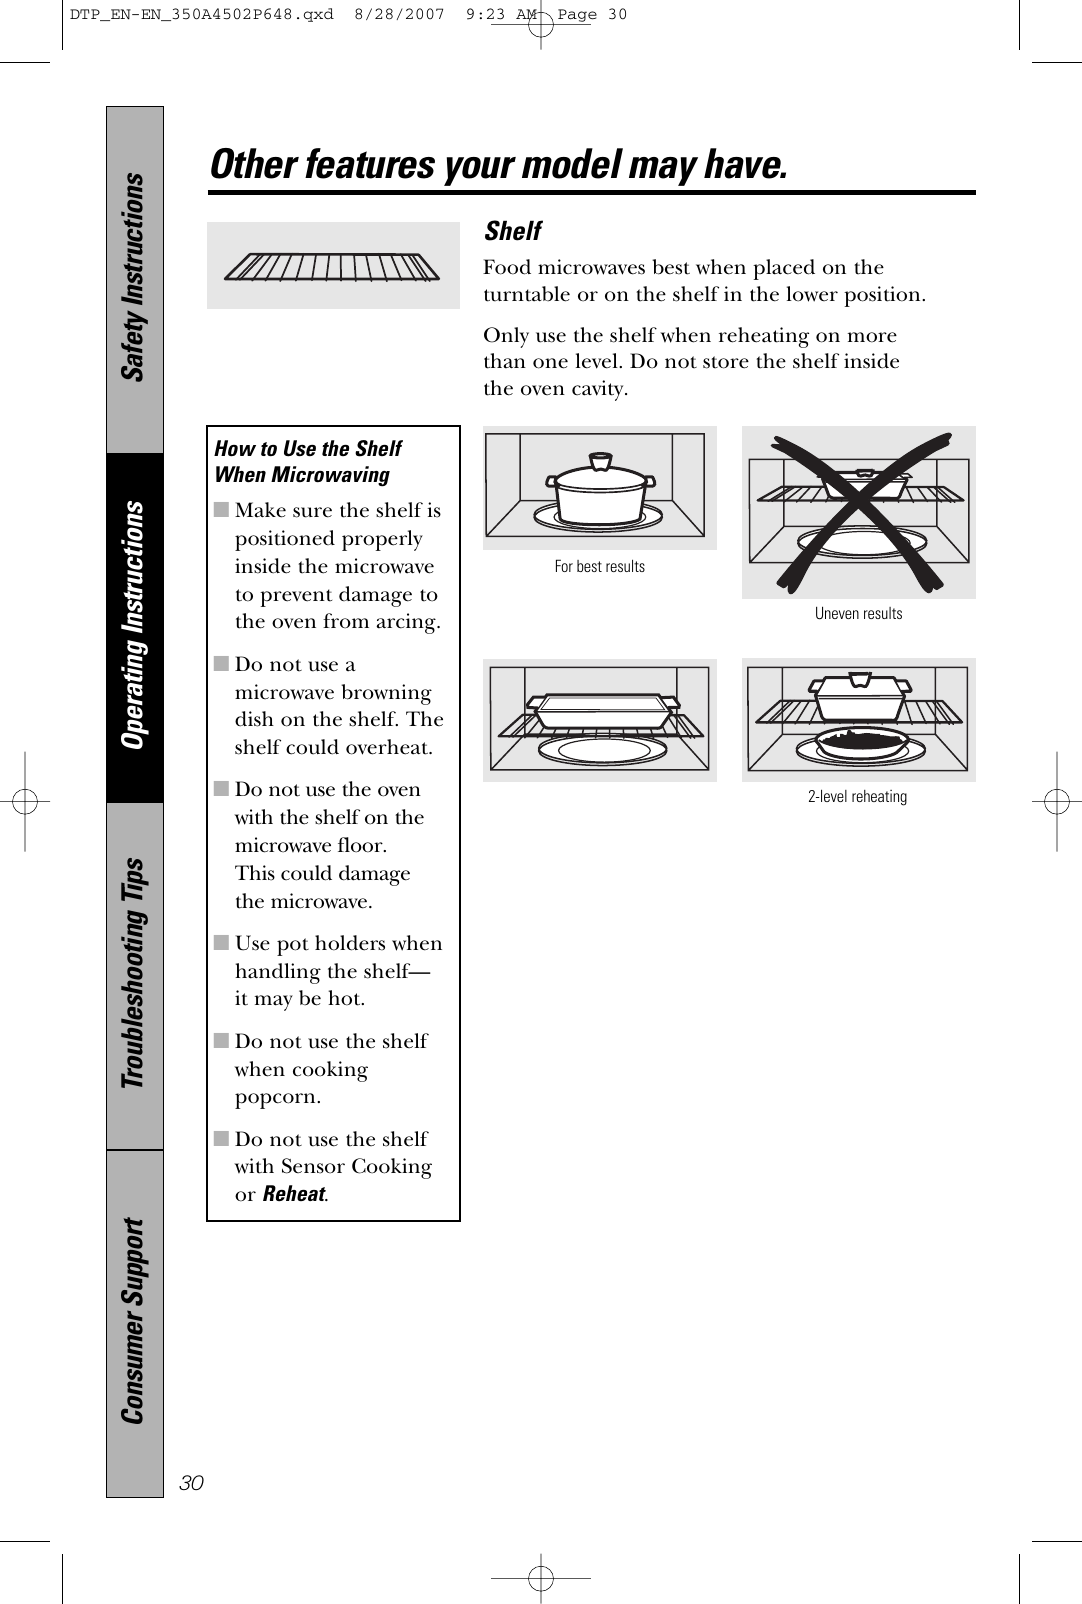 Ge Appliances Pvm1870 Users Manual on